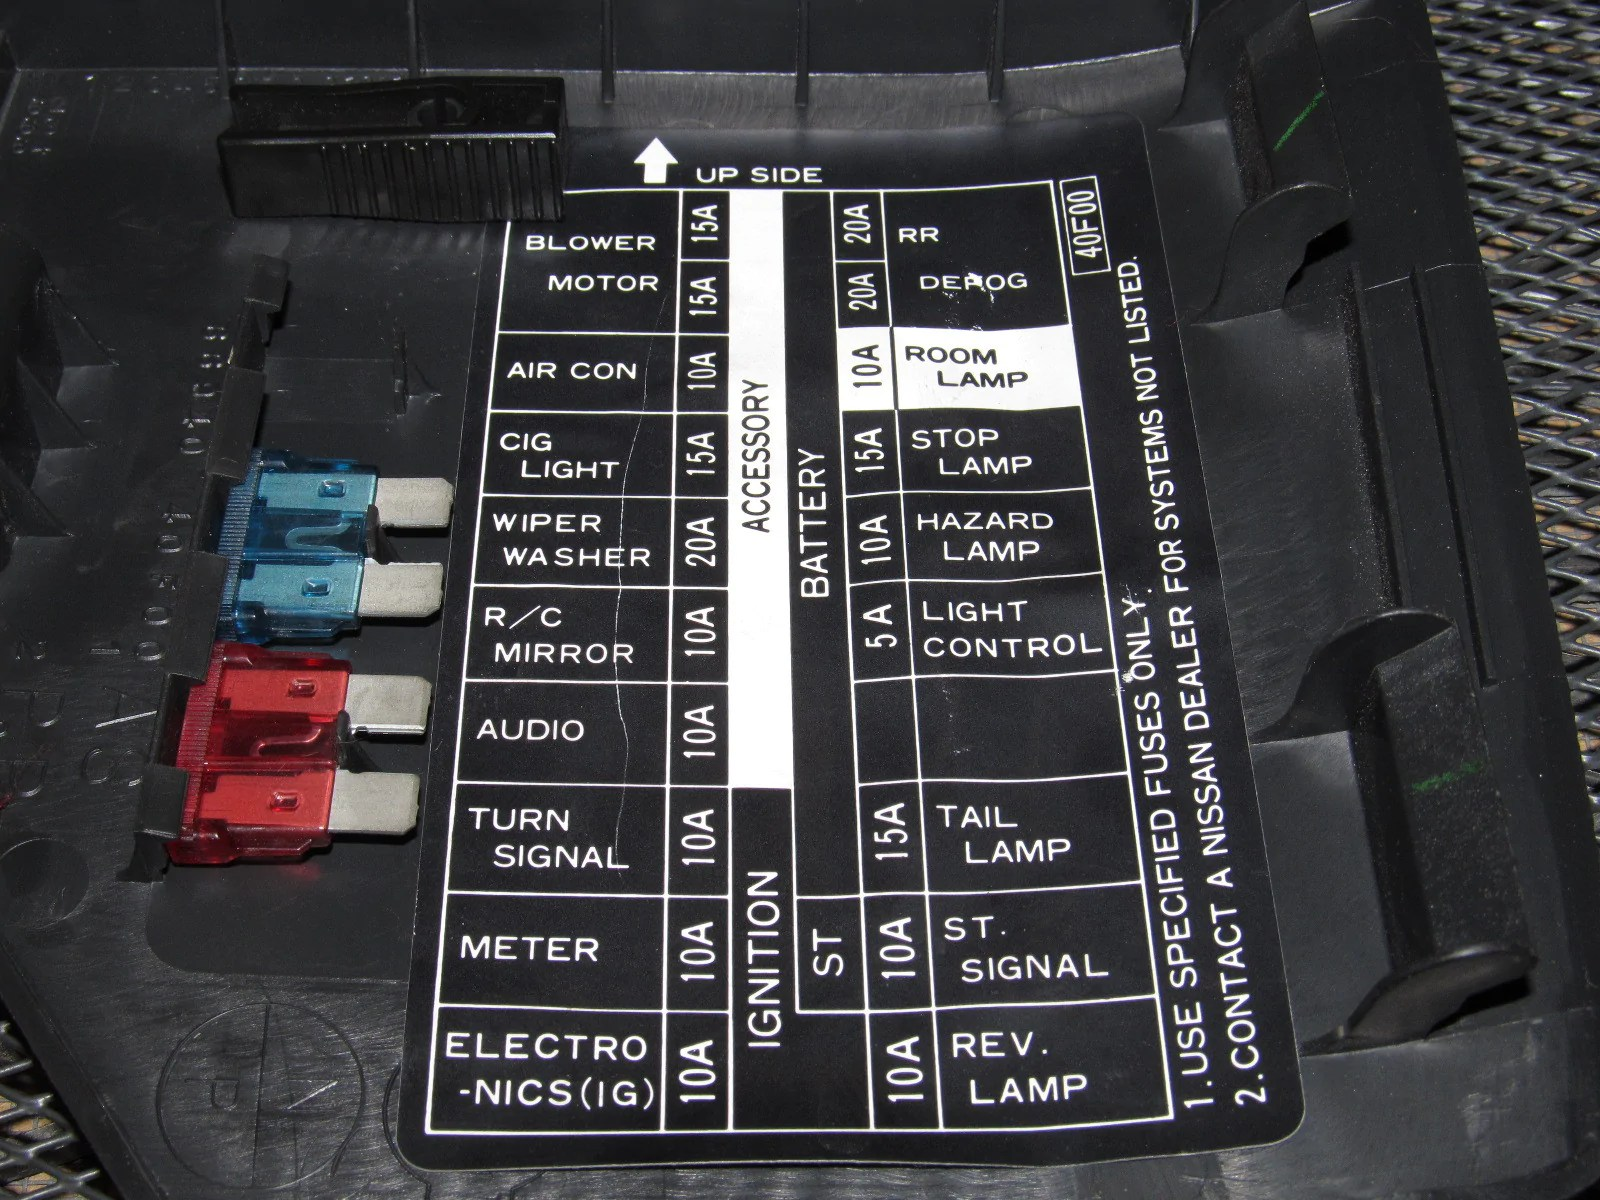 90 240sx fuse box cover wiring diagrams scematic mazda 3 fuse box 240sx fuse box [ 1600 x 1200 Pixel ]